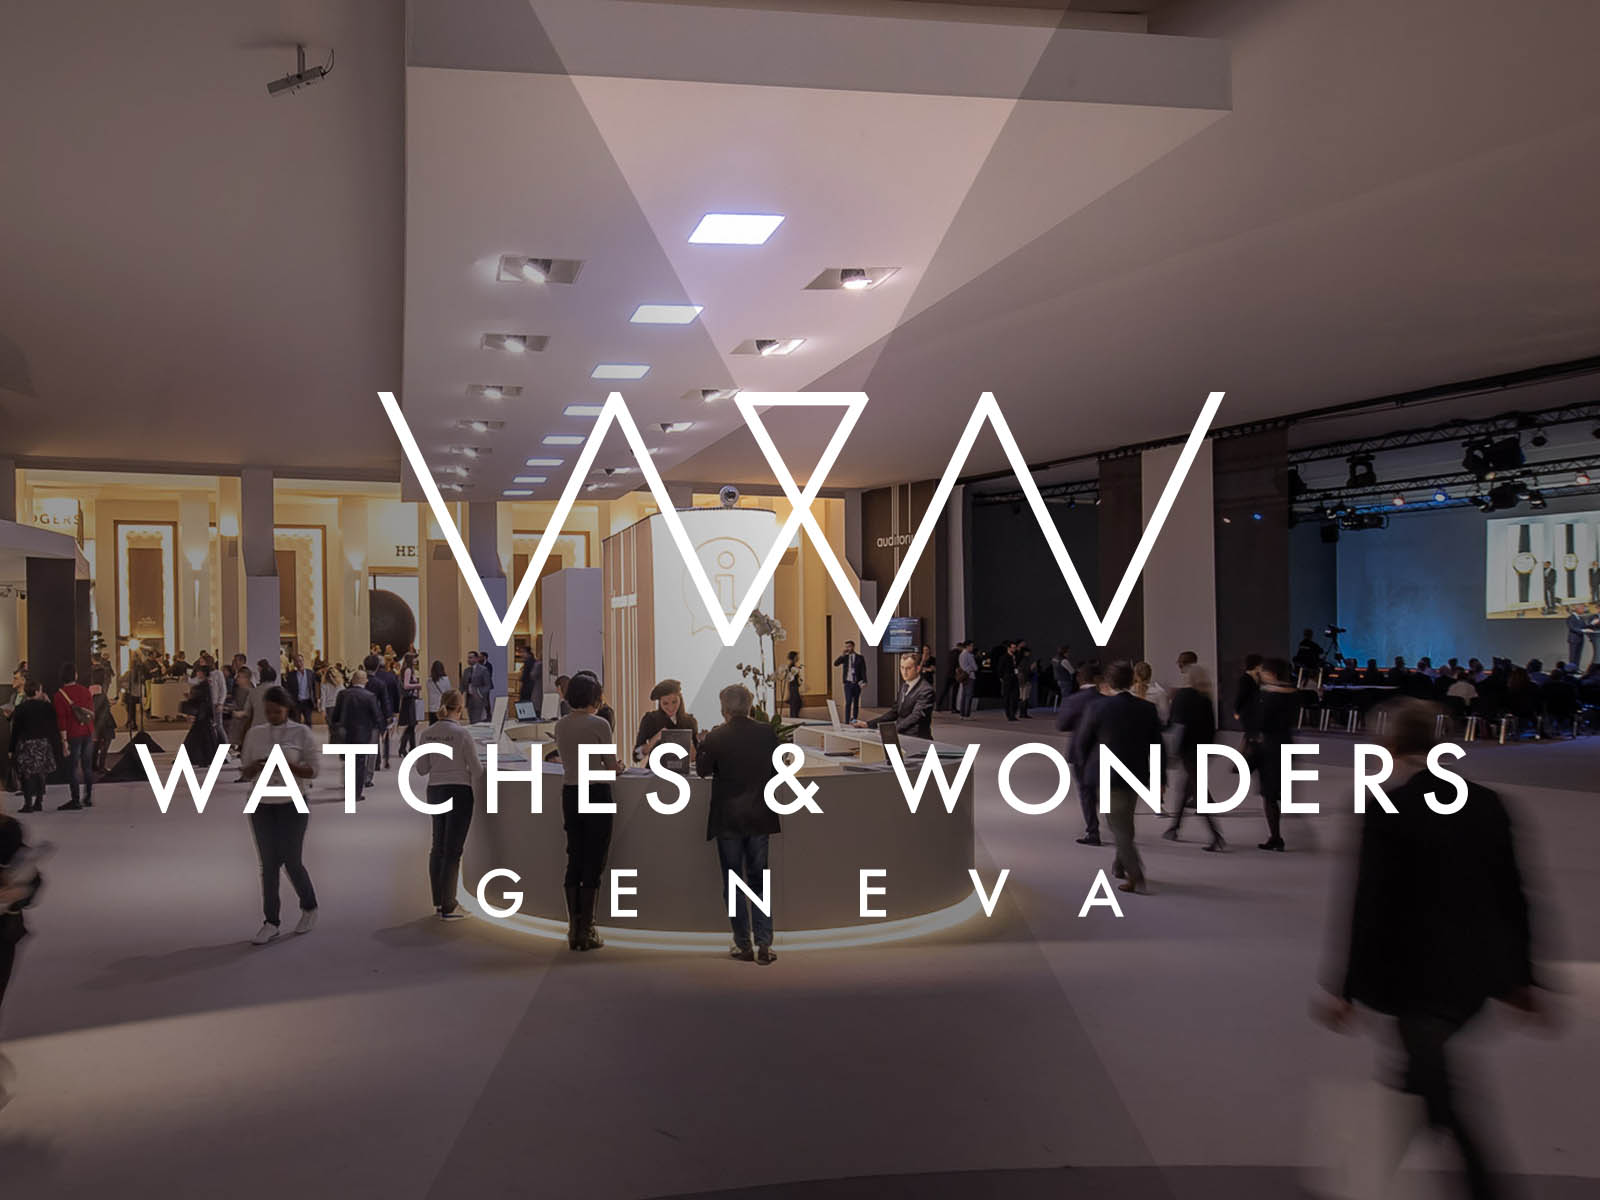 watches-wonders-geneva-new-format-sihh-3.jpg